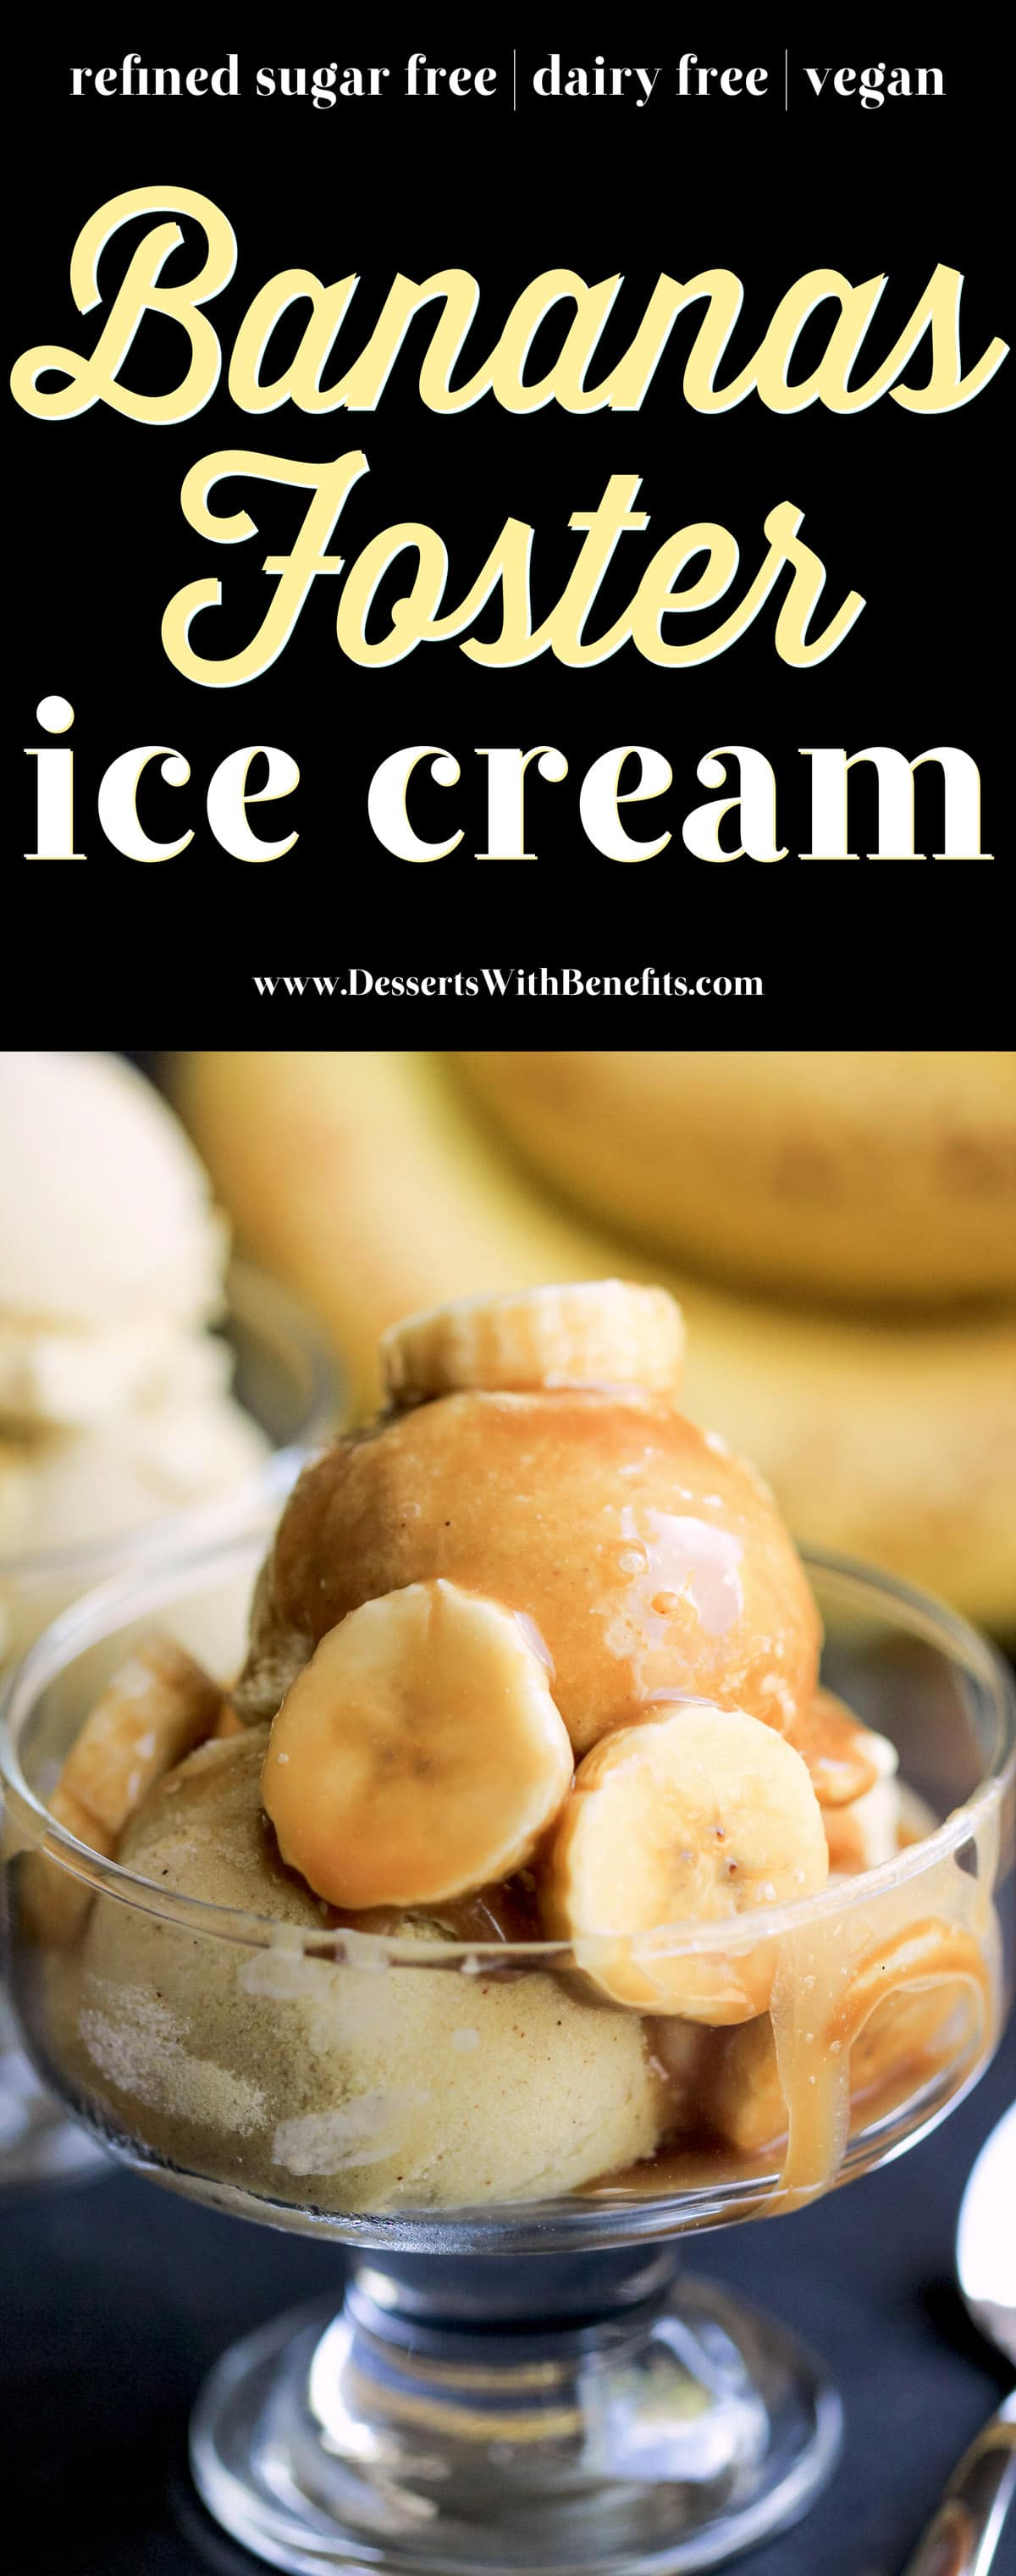 This Healthy Bananas Foster Ice Cream is so sweet, creamy, rich, and delicious, you'll have a hard time believing it's refined sugar free, dairy free, and VEGAN! Healthy Dessert Recipes with sugar free, low calorie, low fat, low carb, high protein, gluten free, dairy free, vegan, and raw options at the Desserts With Benefits Blog (www.DessertsWithBenefits.com)